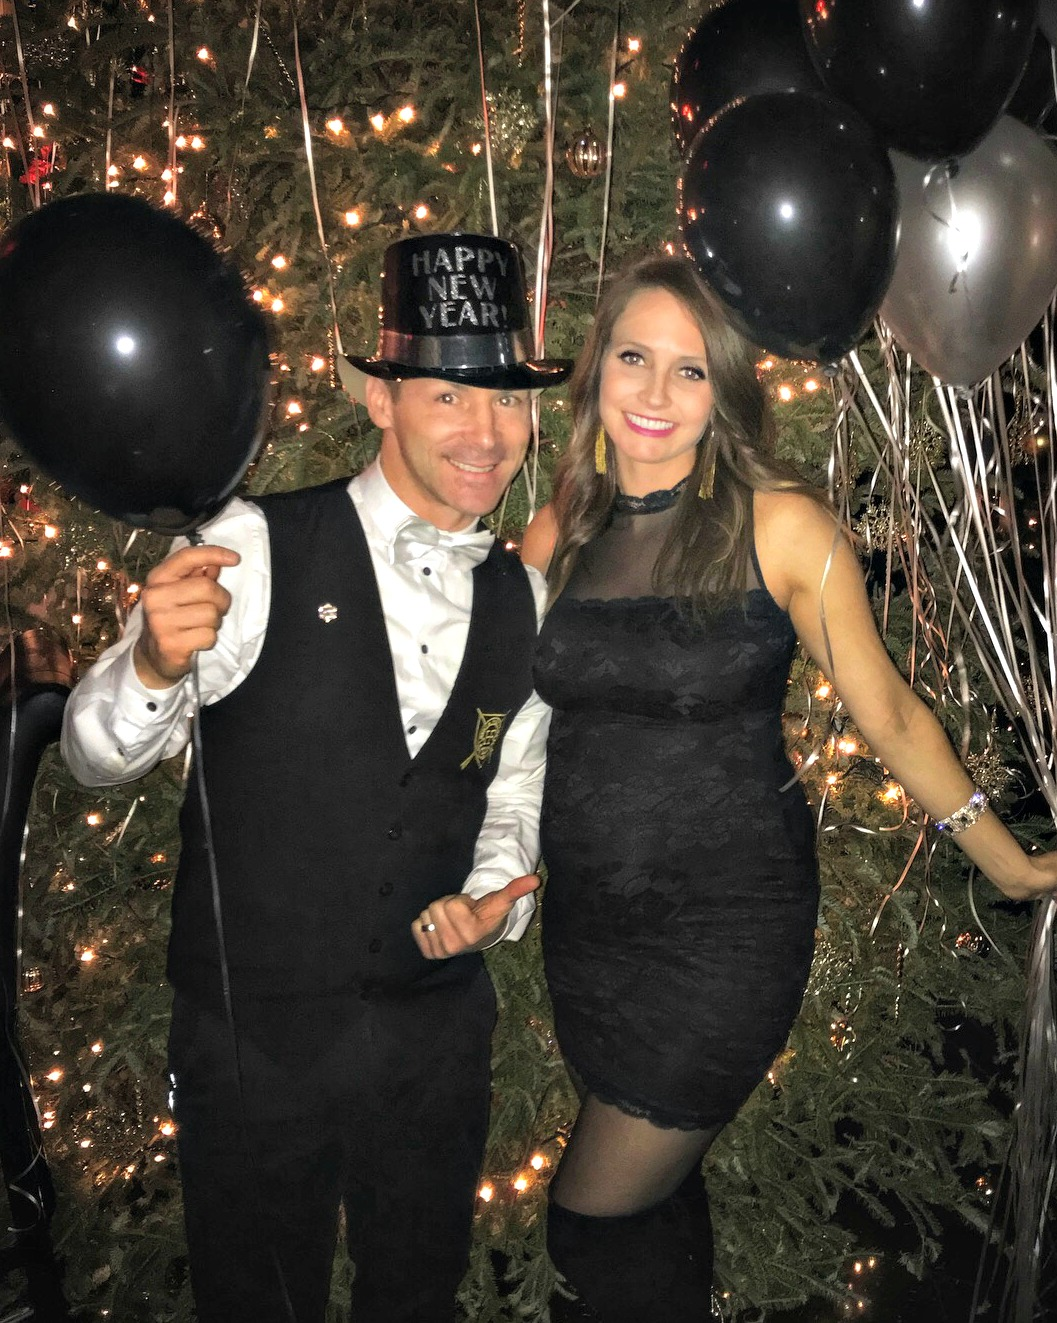 scott and heather new years eve 2018